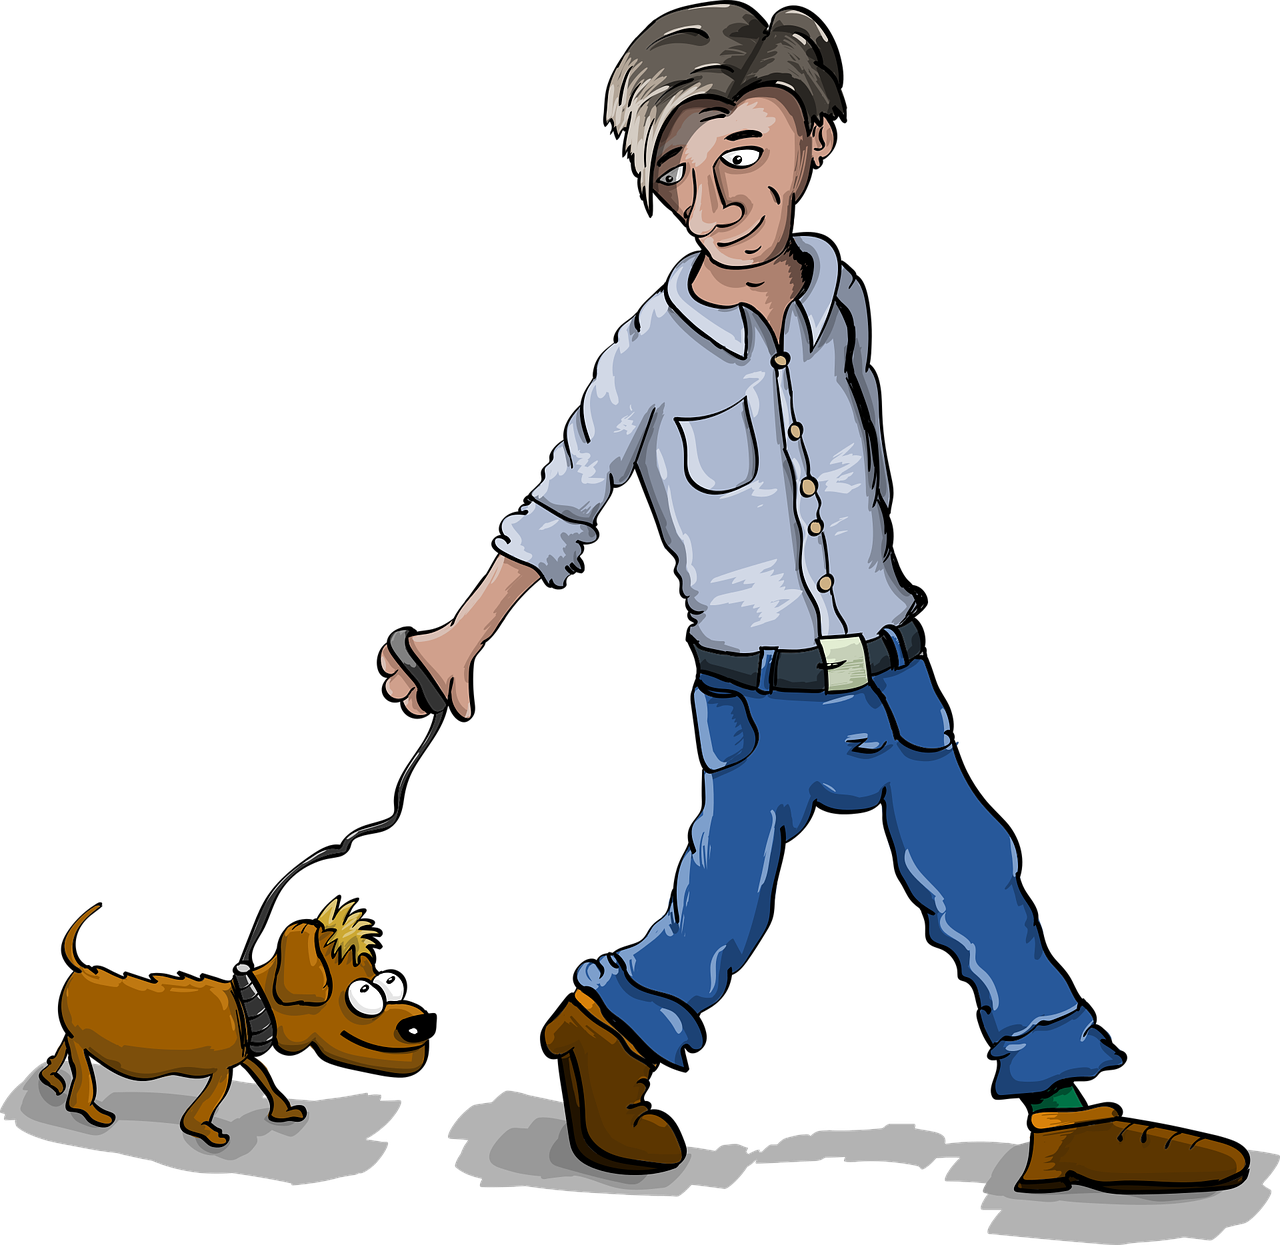 Dog with leash clipart graphic free download How To Train Your Dog Not To Pull On His/Her Leash When Walking graphic free download